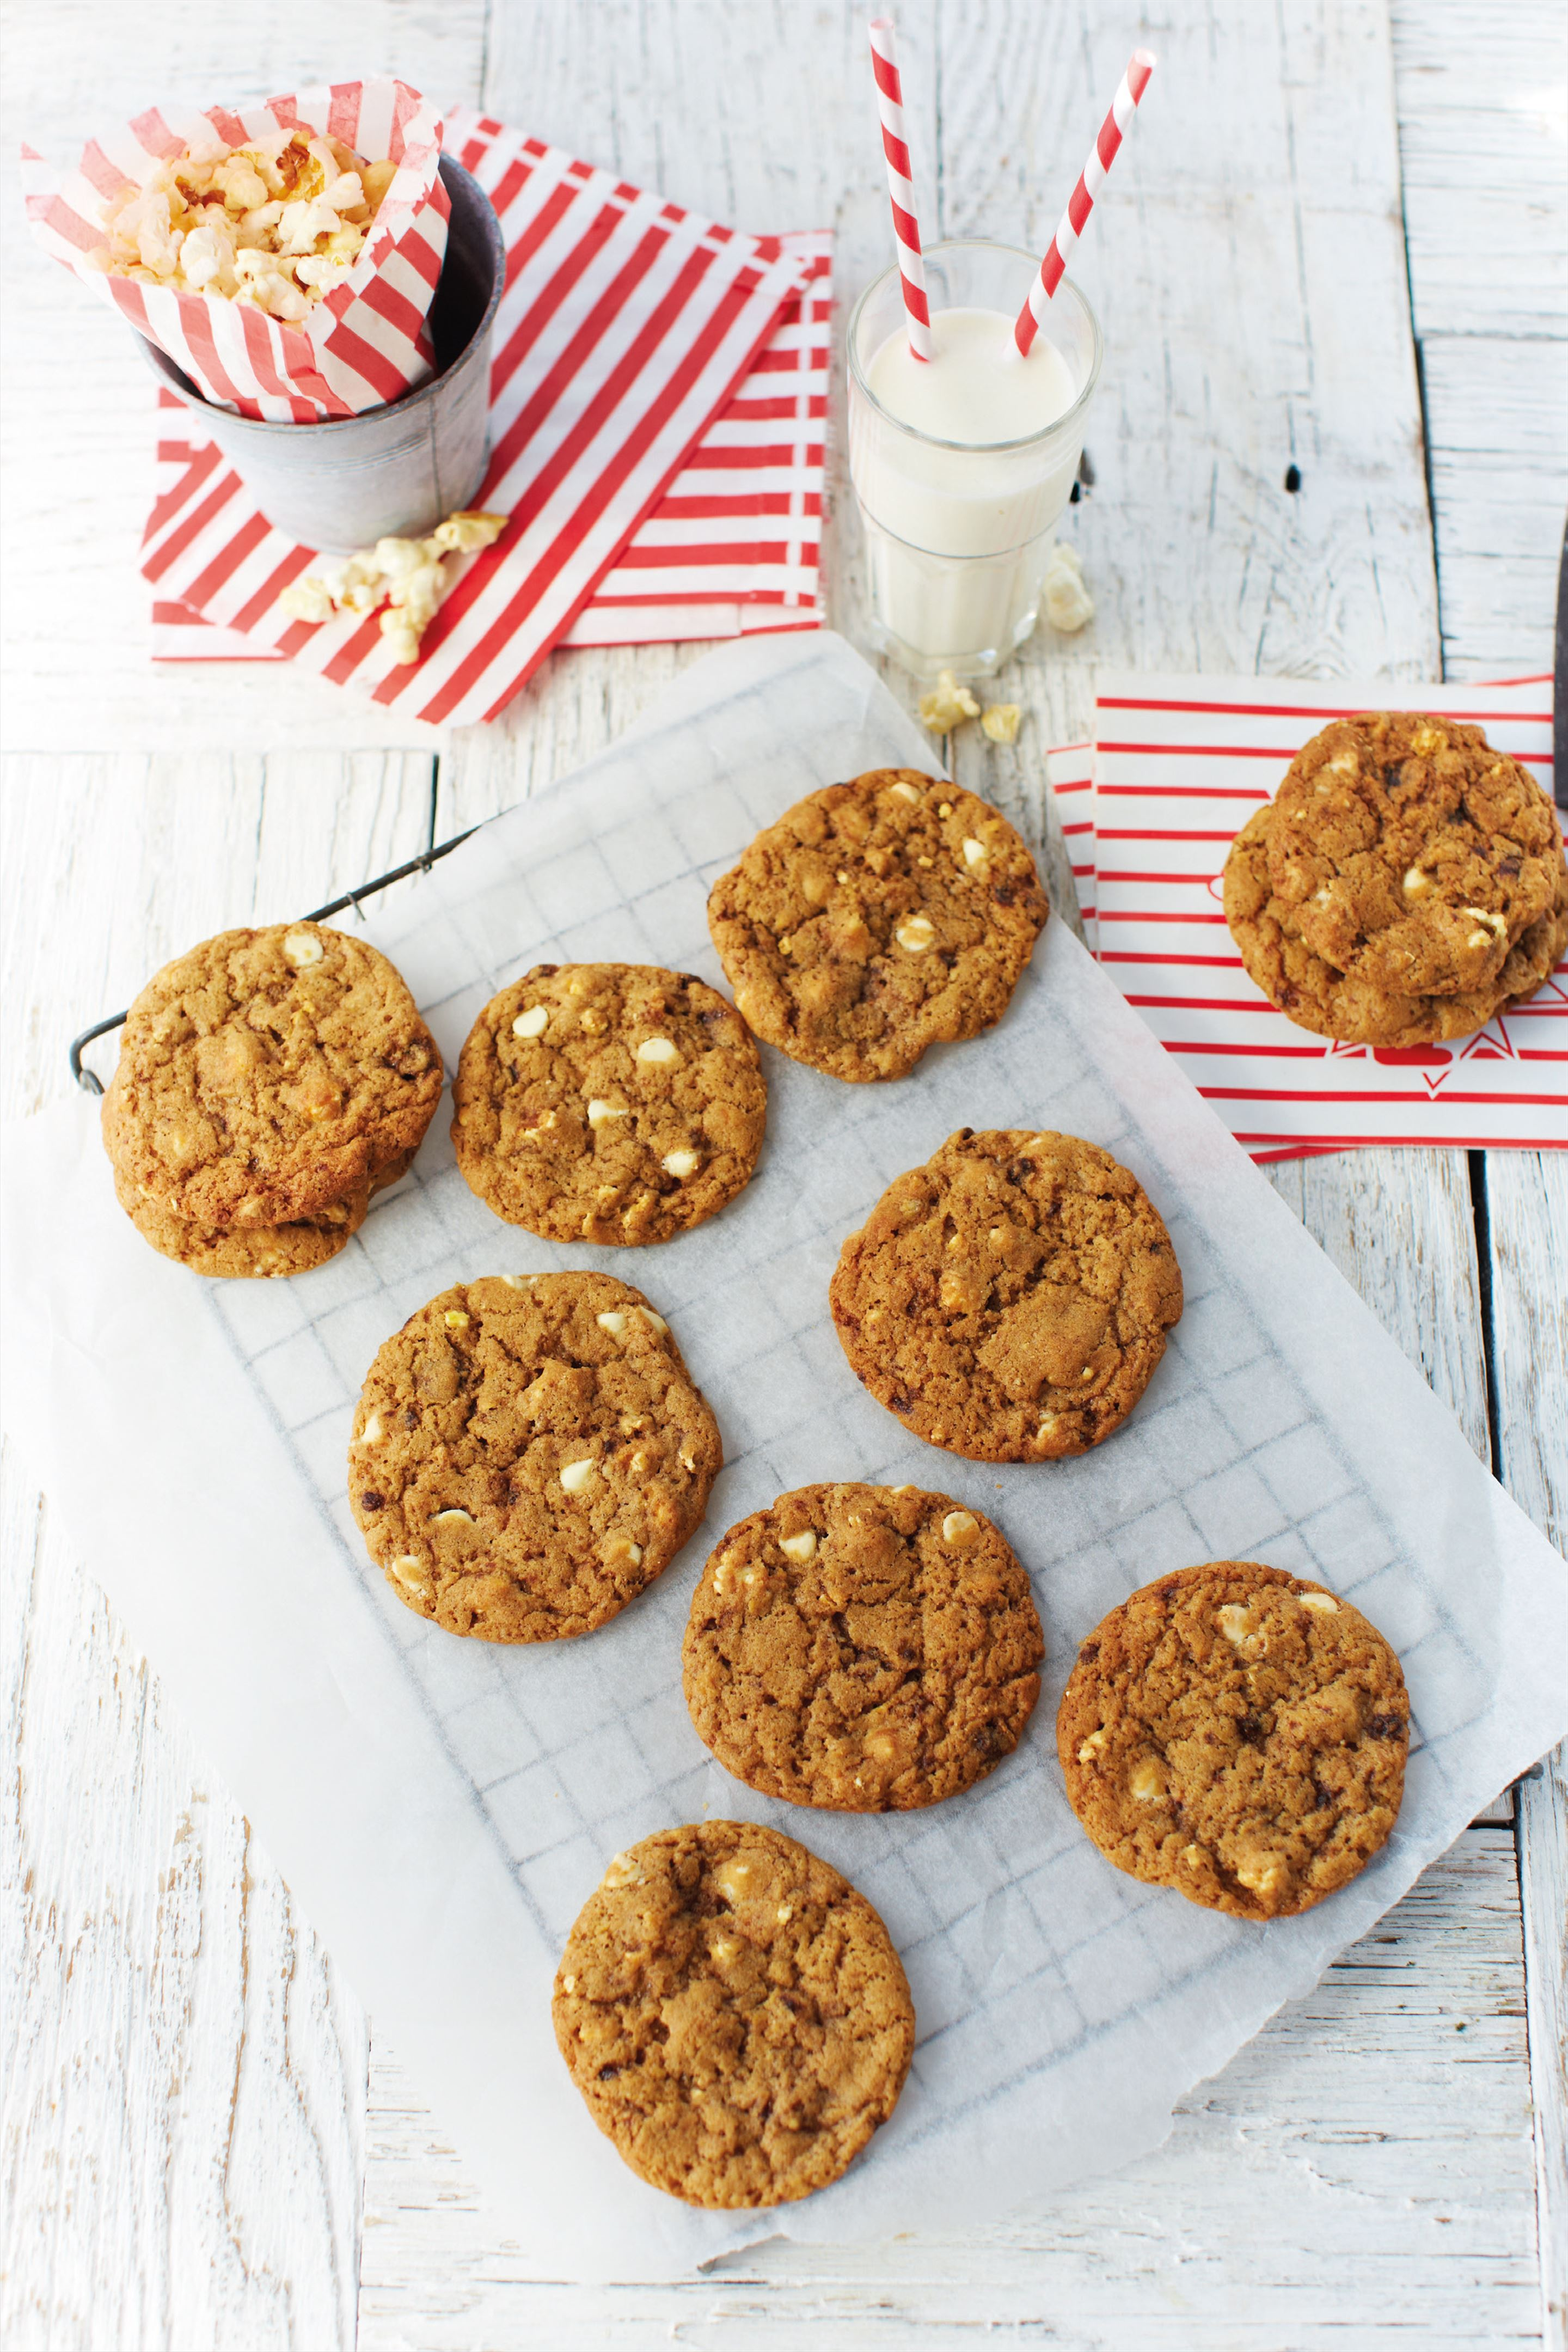 Popcorn and white chocolate all-American chewy cookies